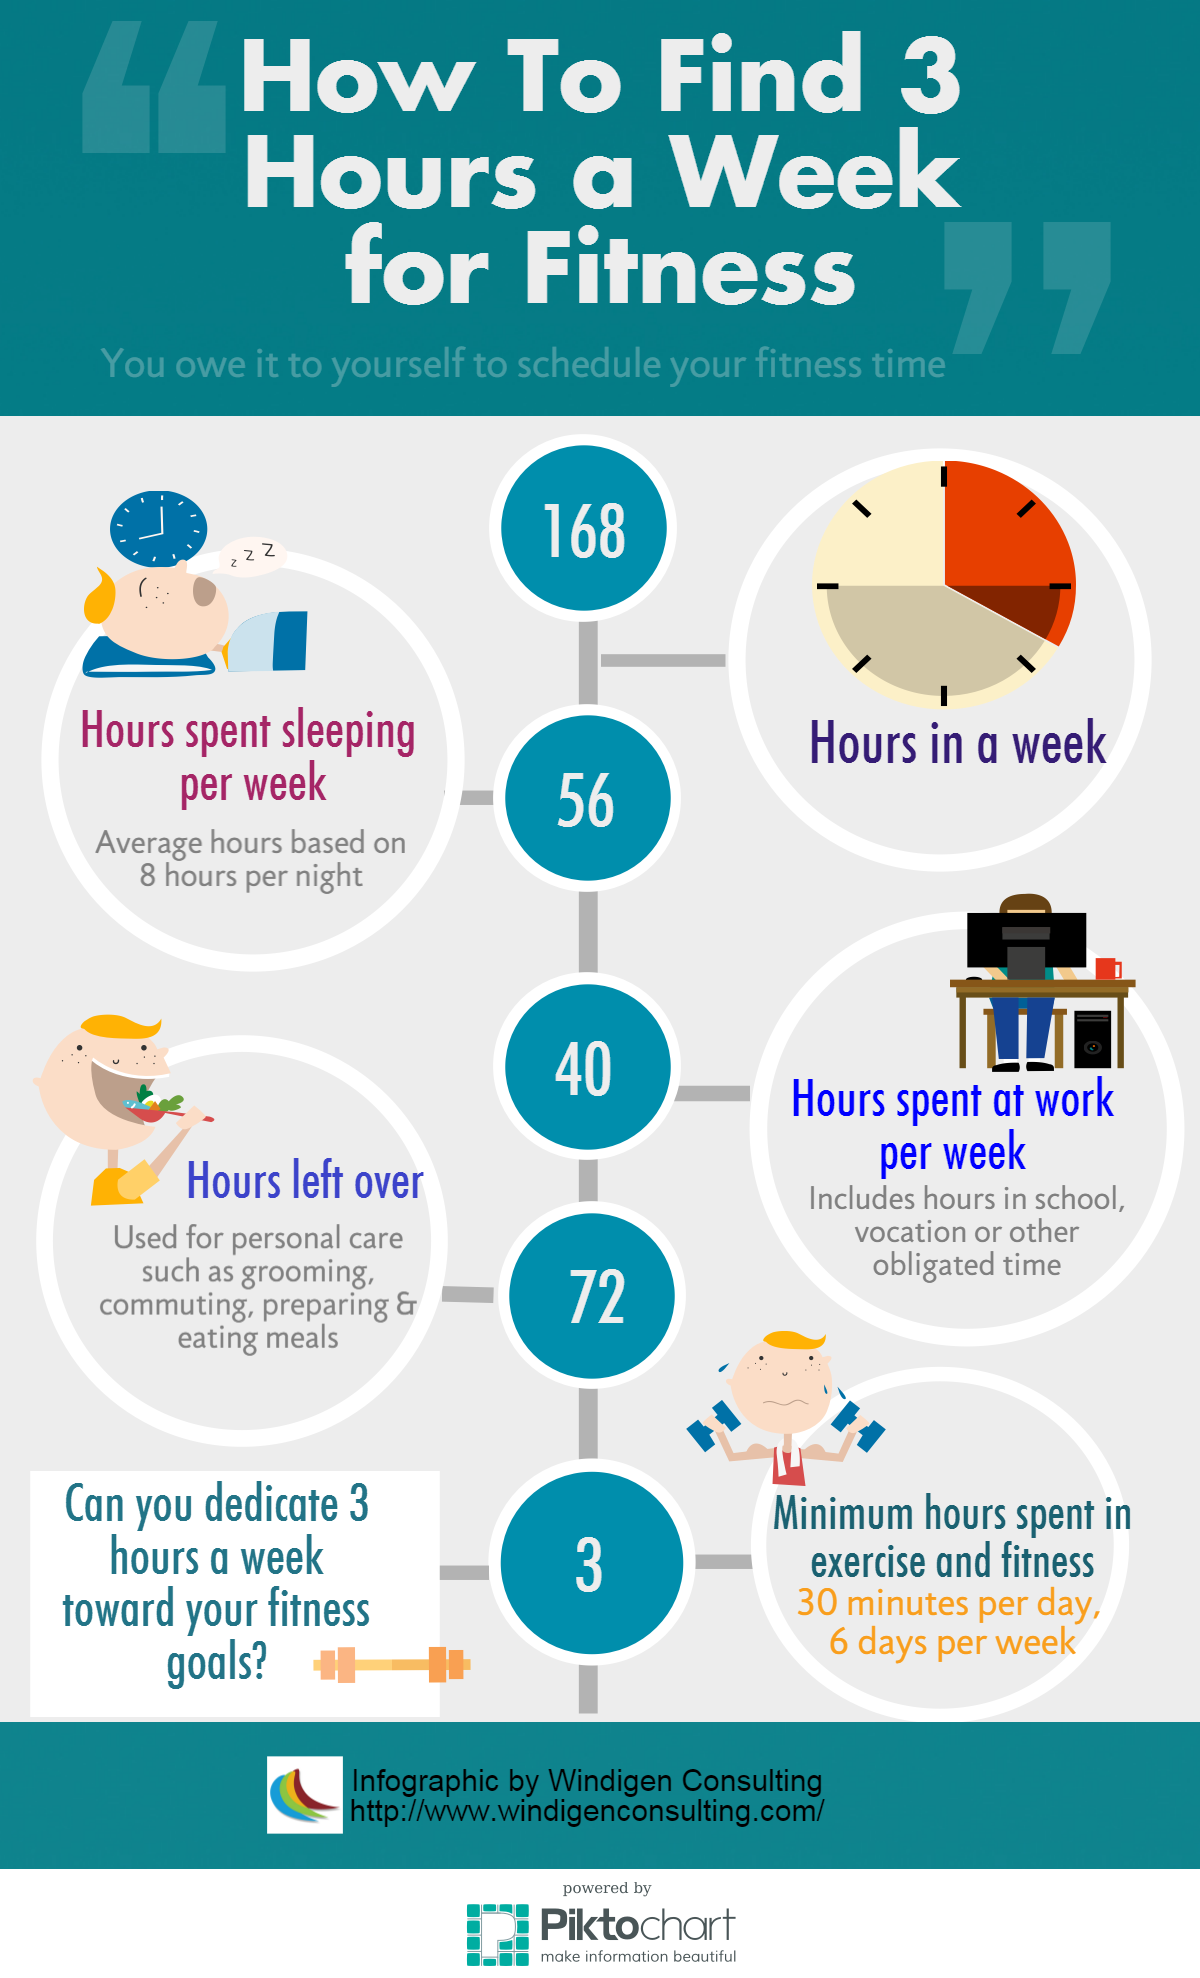 Time Well Spent How To Find 3 Hours A Week For Fitness